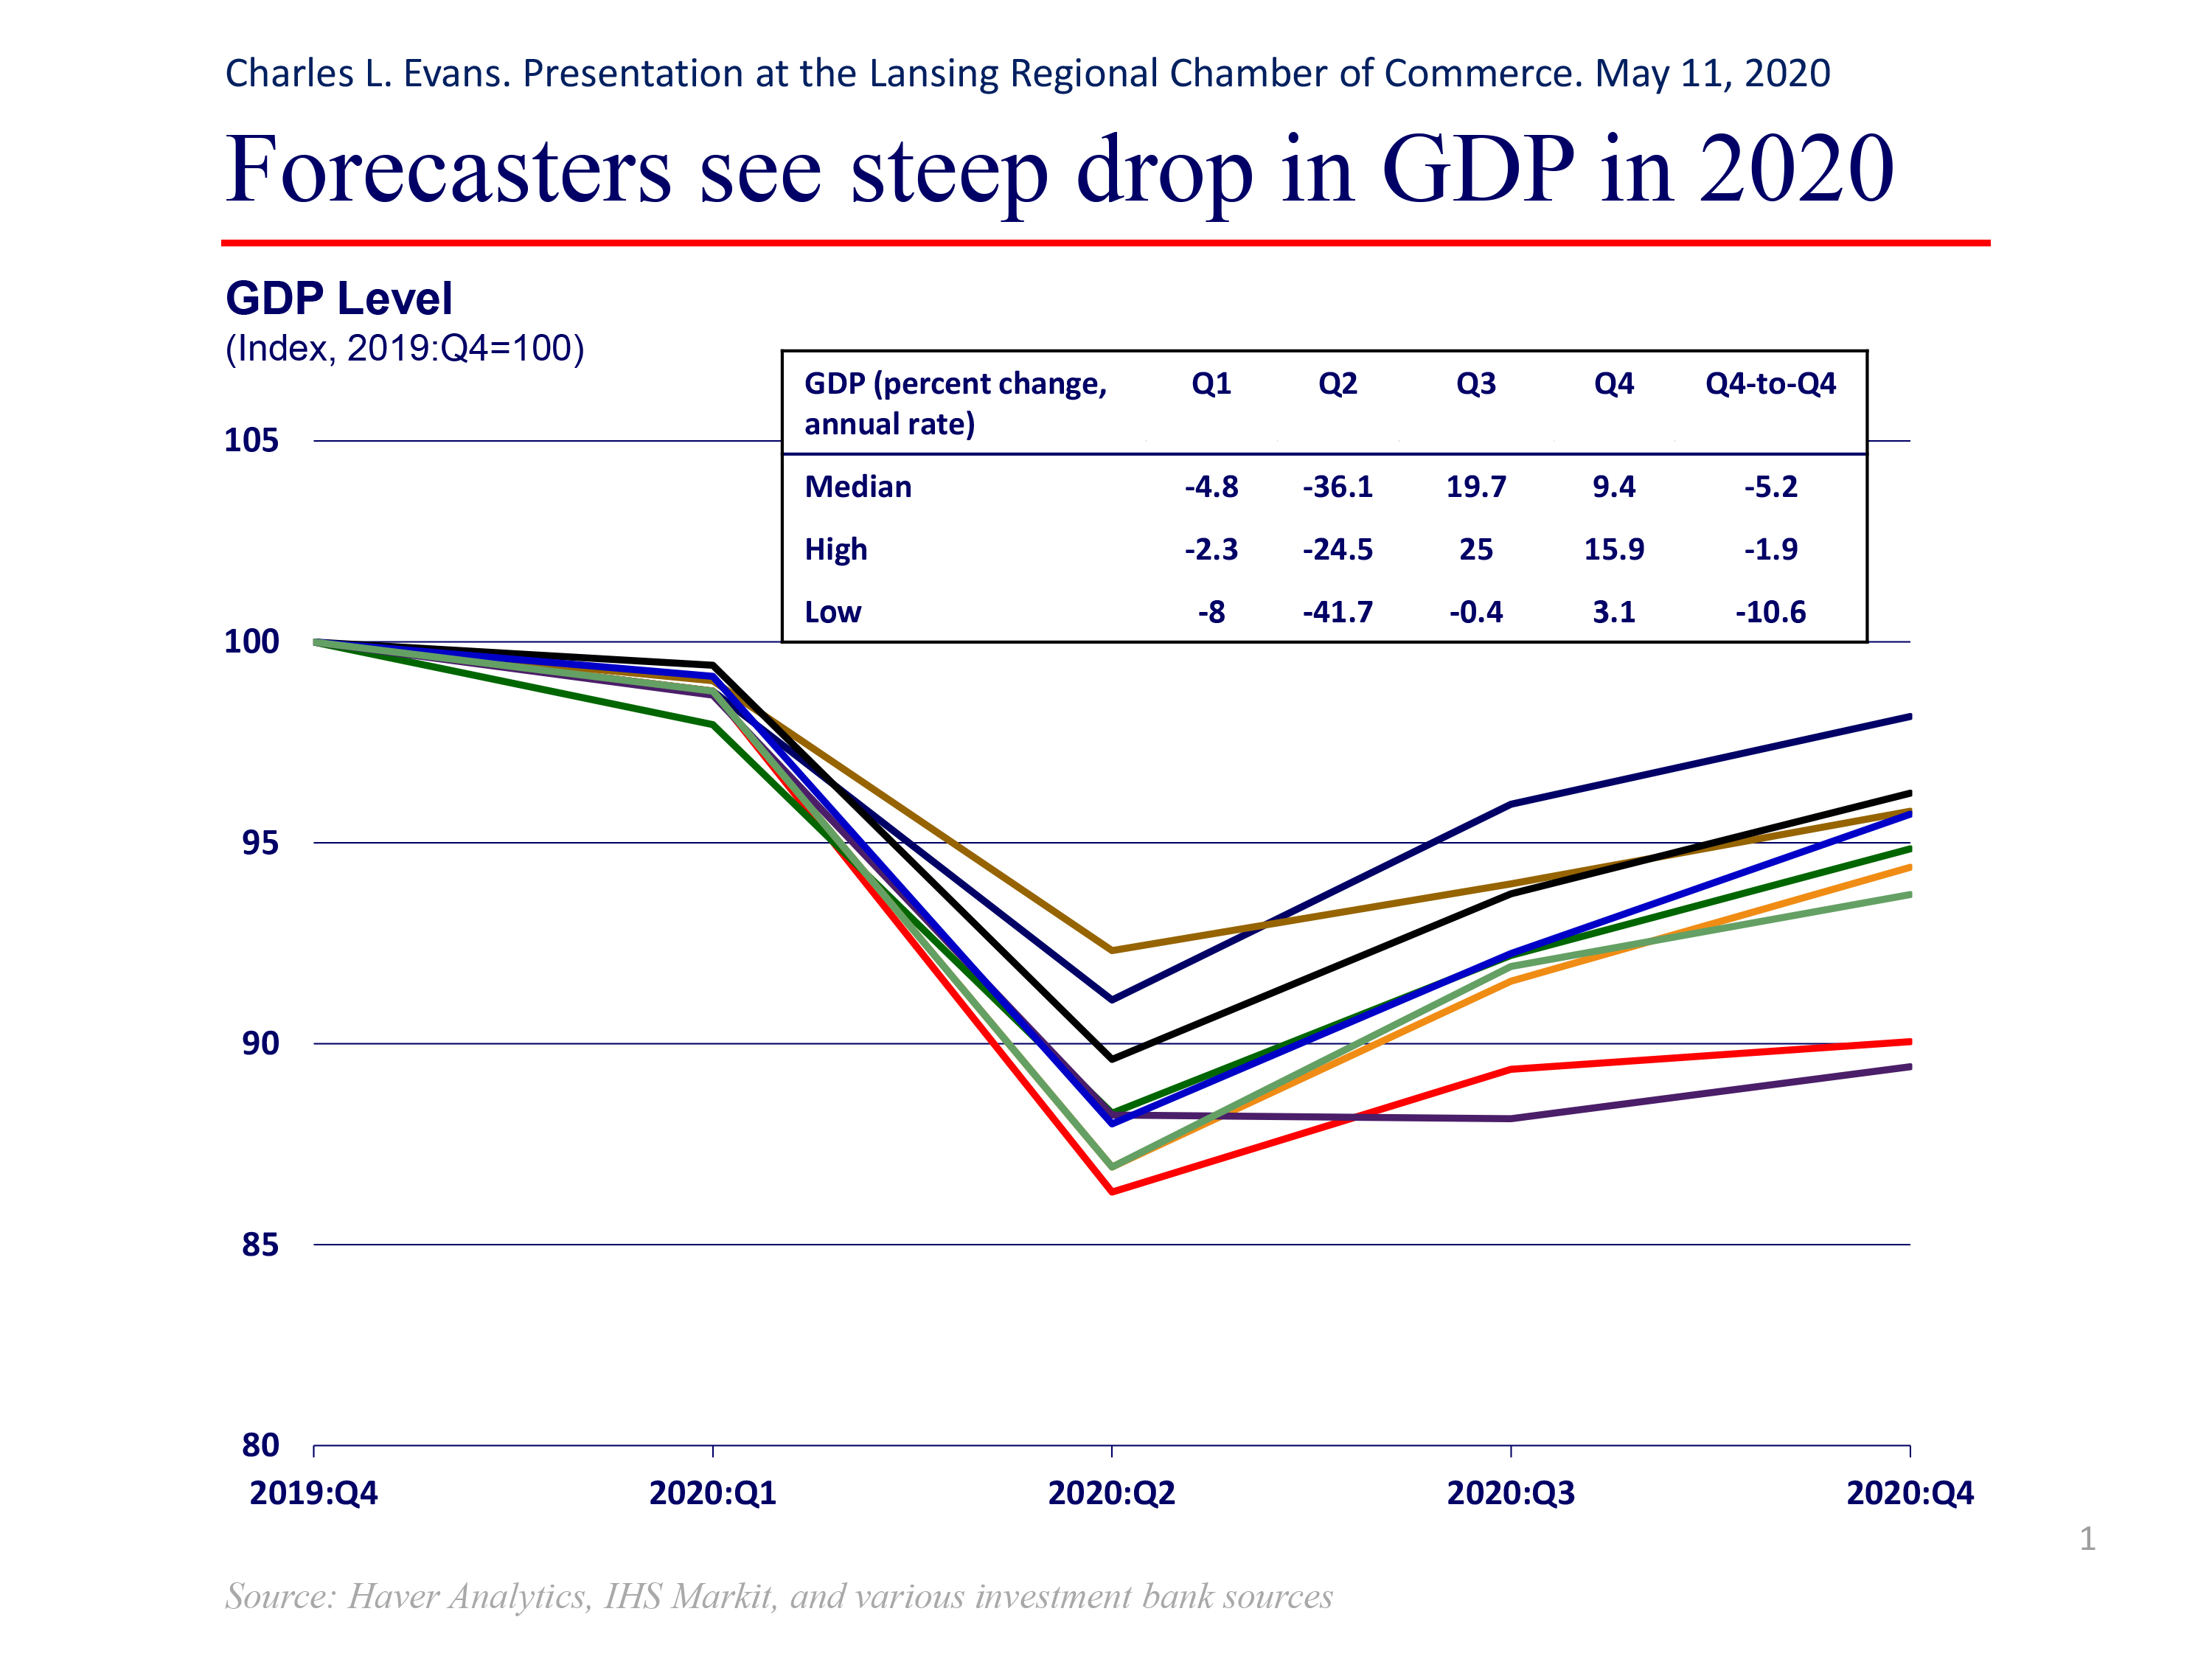 Forecasters see steep drop in GDP in 2020. The median estimate for Q2 2020 is -36.1.